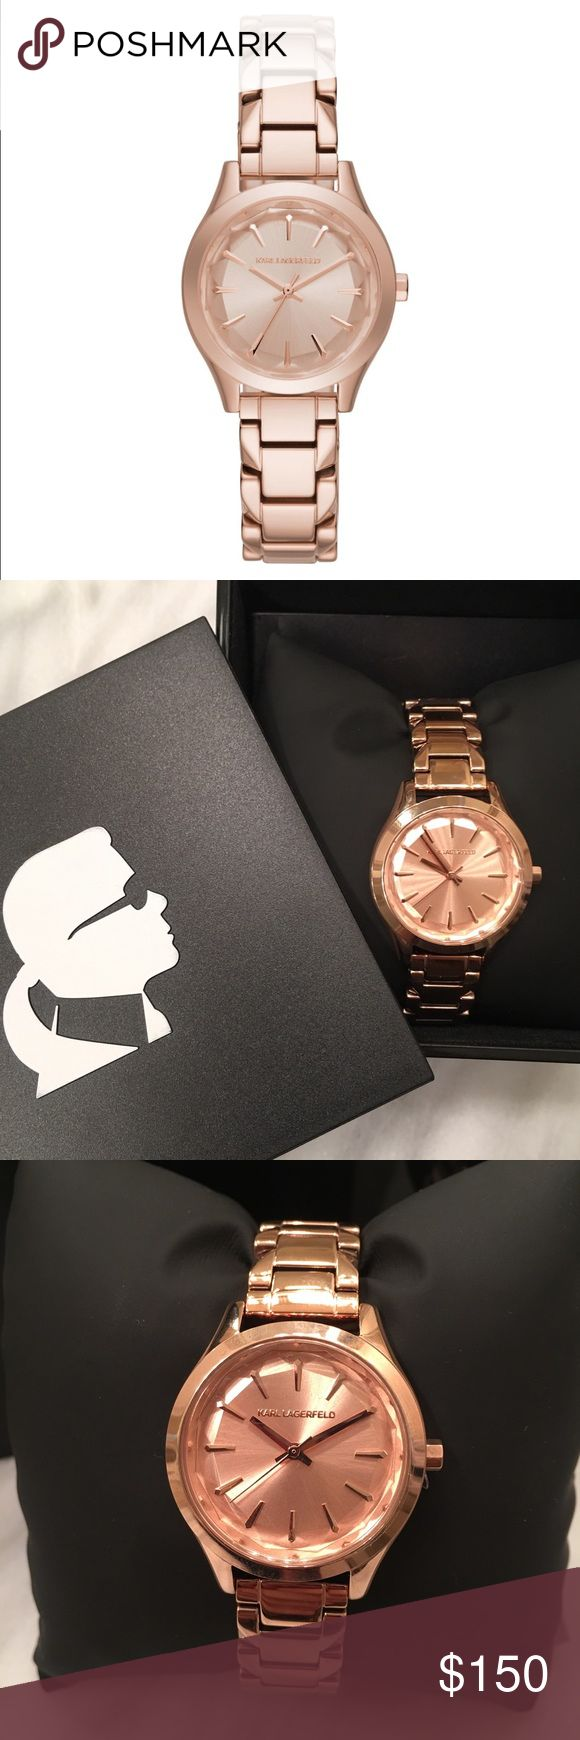 Karl Lagerfeld Rose Gold Watch Beautiful rose gold Karl Lagerfeld watch. It is new with tags and has never been worn; retails for $225! The face still has the protective plastic- will also ship with the box and instruction booklet. Karl Lagerfeld Accessories Watches